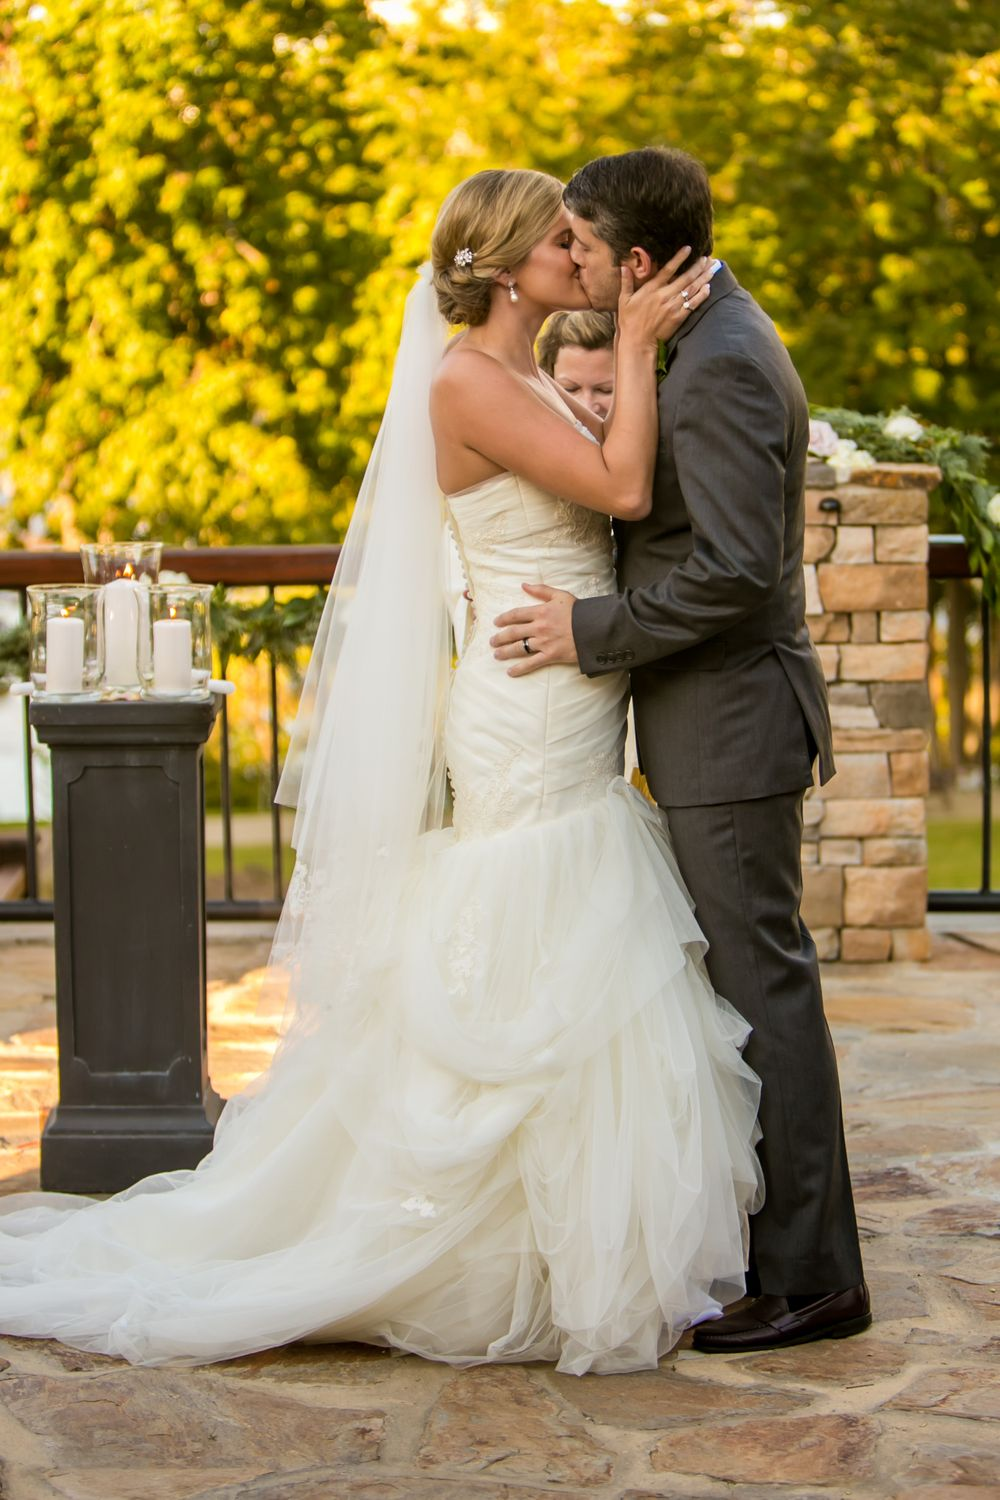 Bride Ashley and groom Jared have their first kiss during their wedding ceremony at Stone River in West Columbia, SC